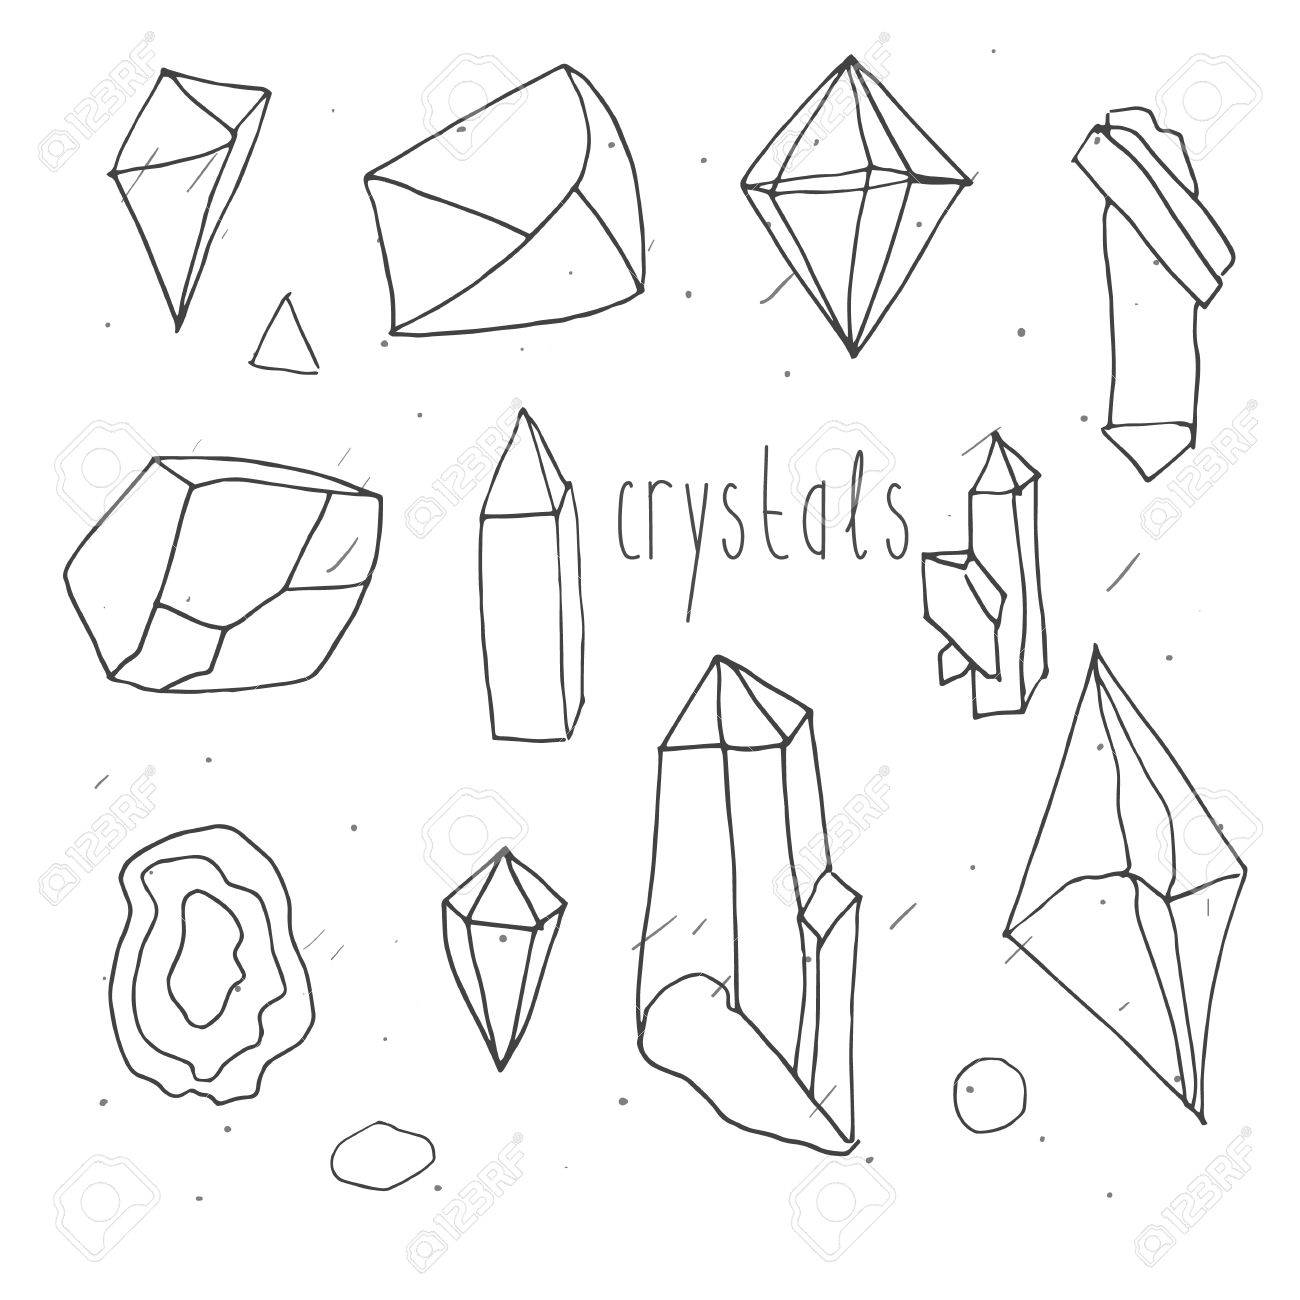 1300x1300 Geometric Polygonal Crystals In Mono Line Hand Draw Style Isolated